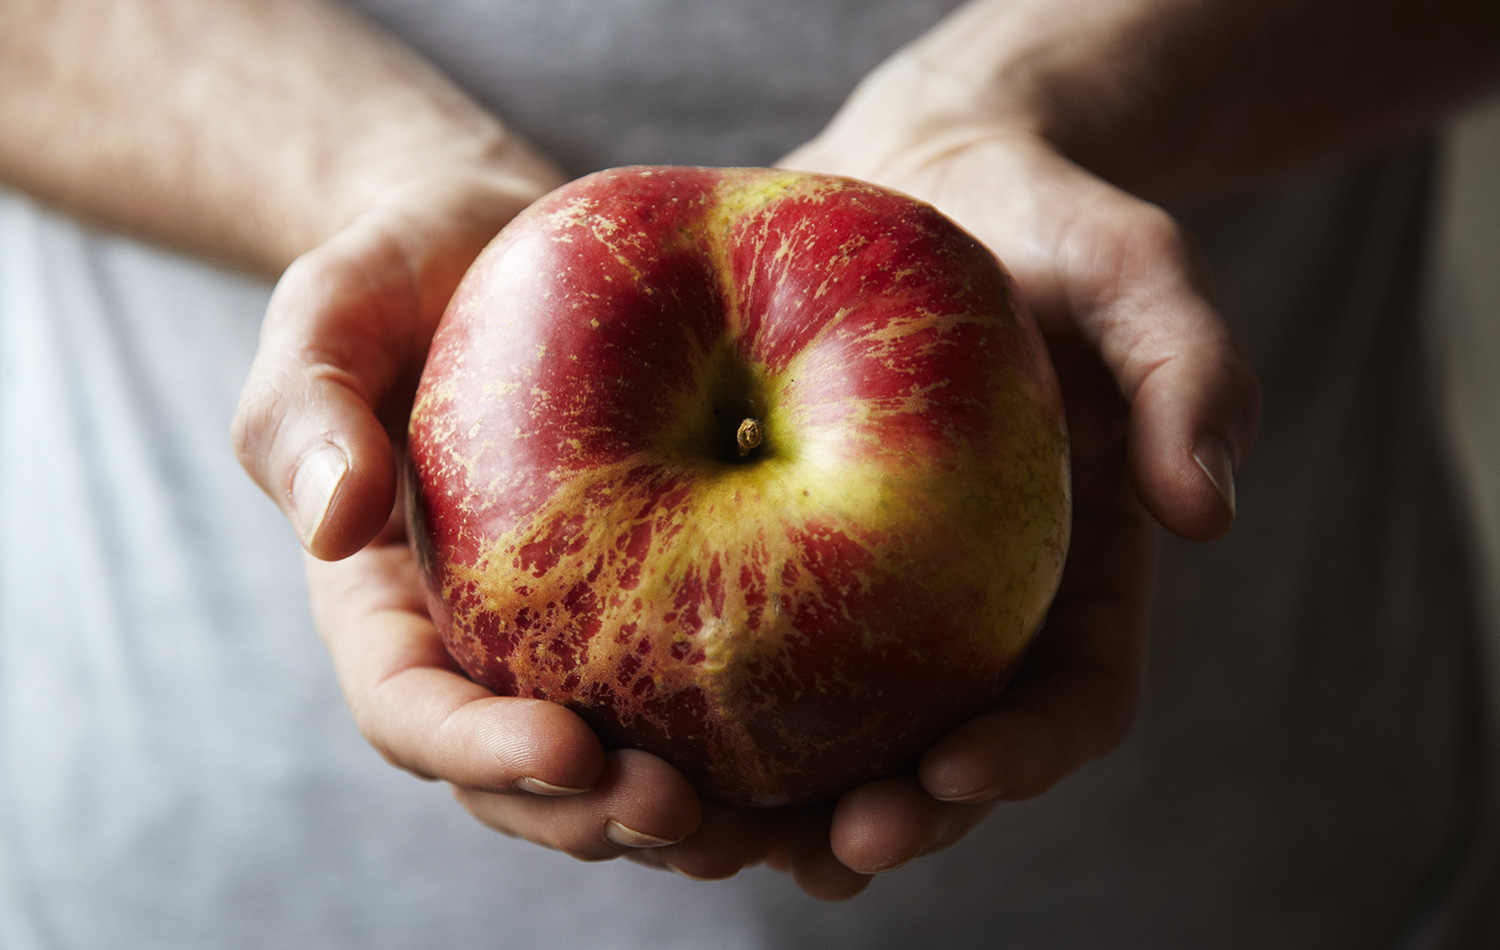 How big is this apple ? So big, too big, not too big..How big can an apple get.